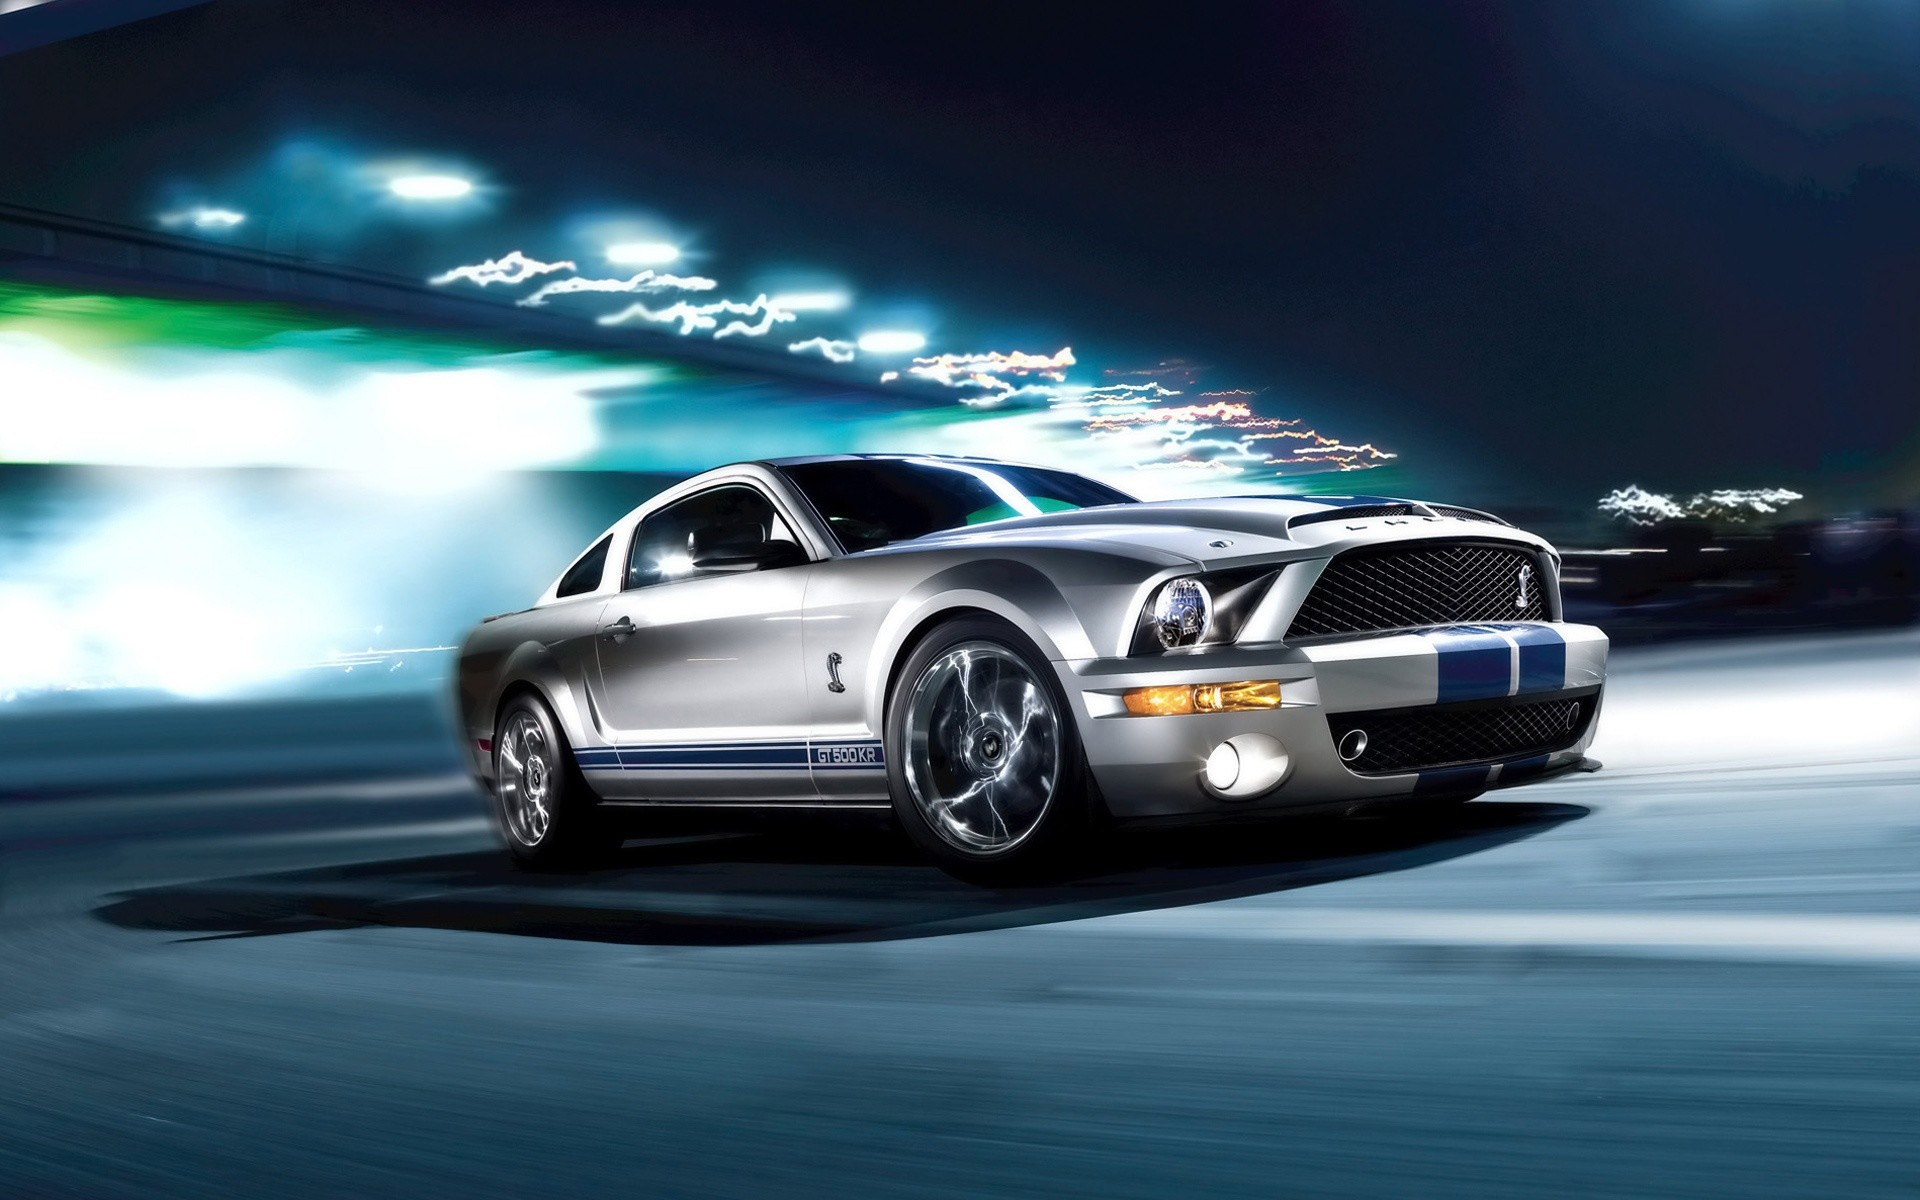 75 Ford Mustang Shelby GT500 HD Wallpapers | Backgrounds – Wallpaper Abyss